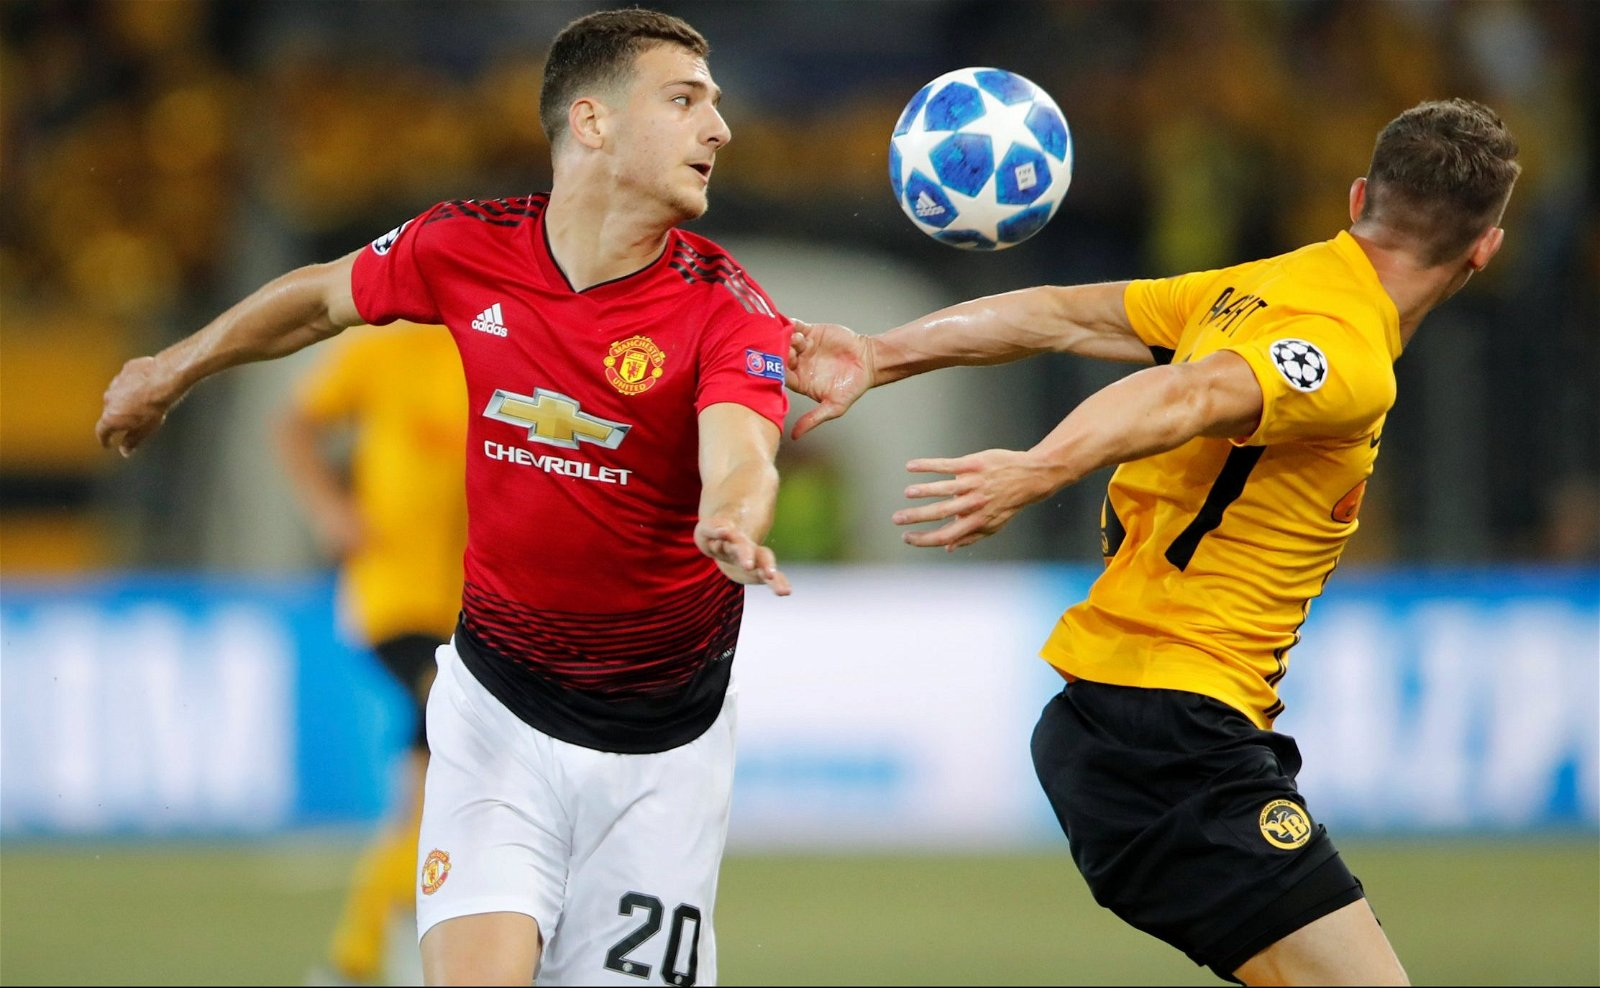 Diogo Dalot should be first choice right-back for Manchester United, even when Valencia returns